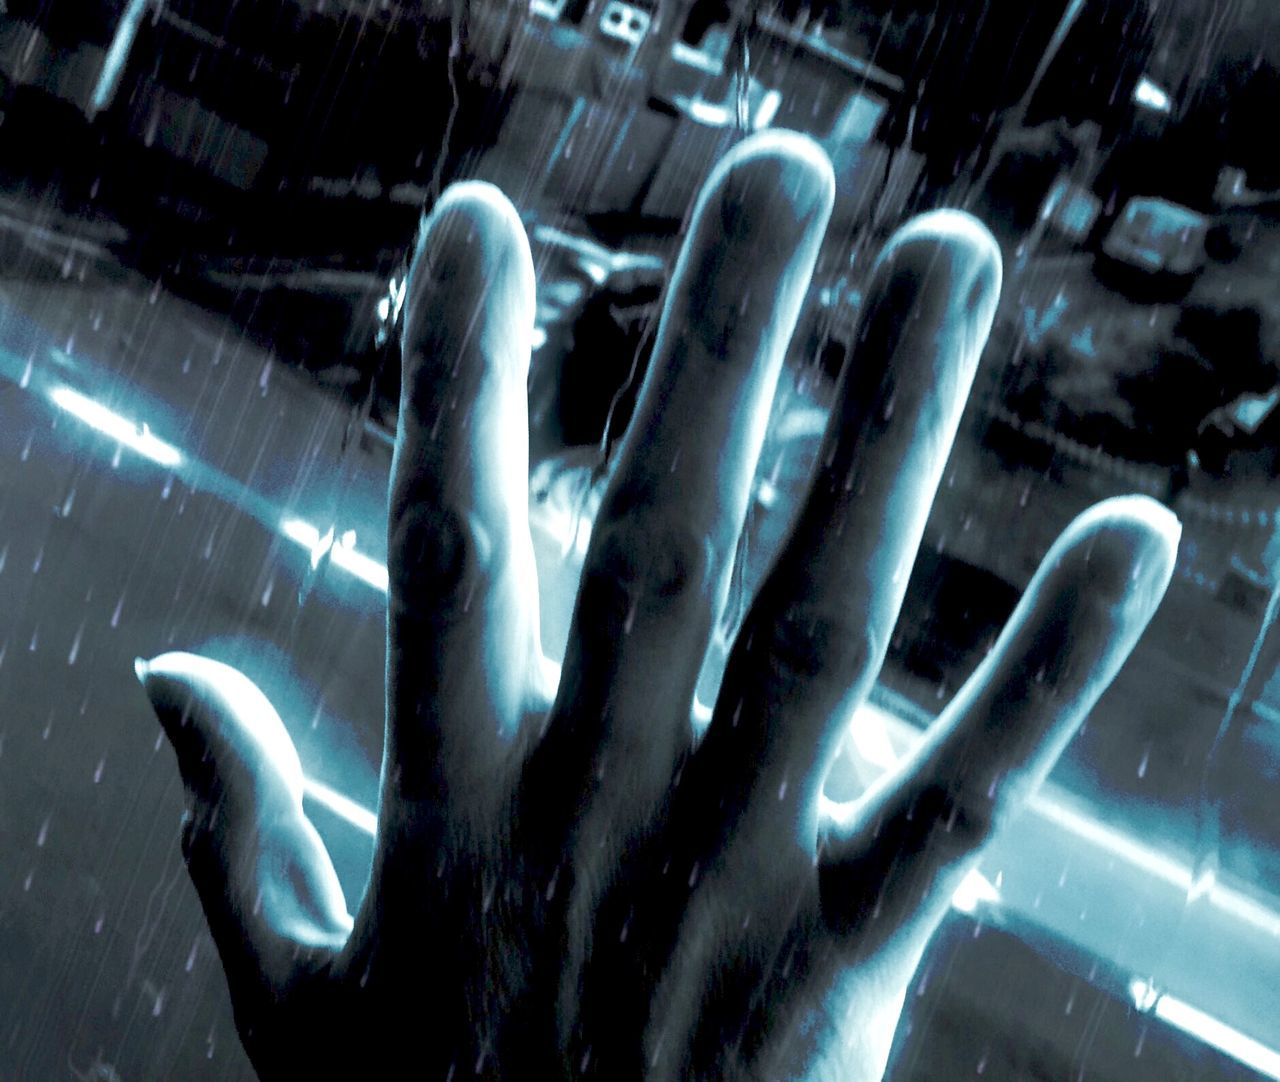 Hand Freaky Weird One Hand Street Twilight Glowing Edges Urban Help Scared